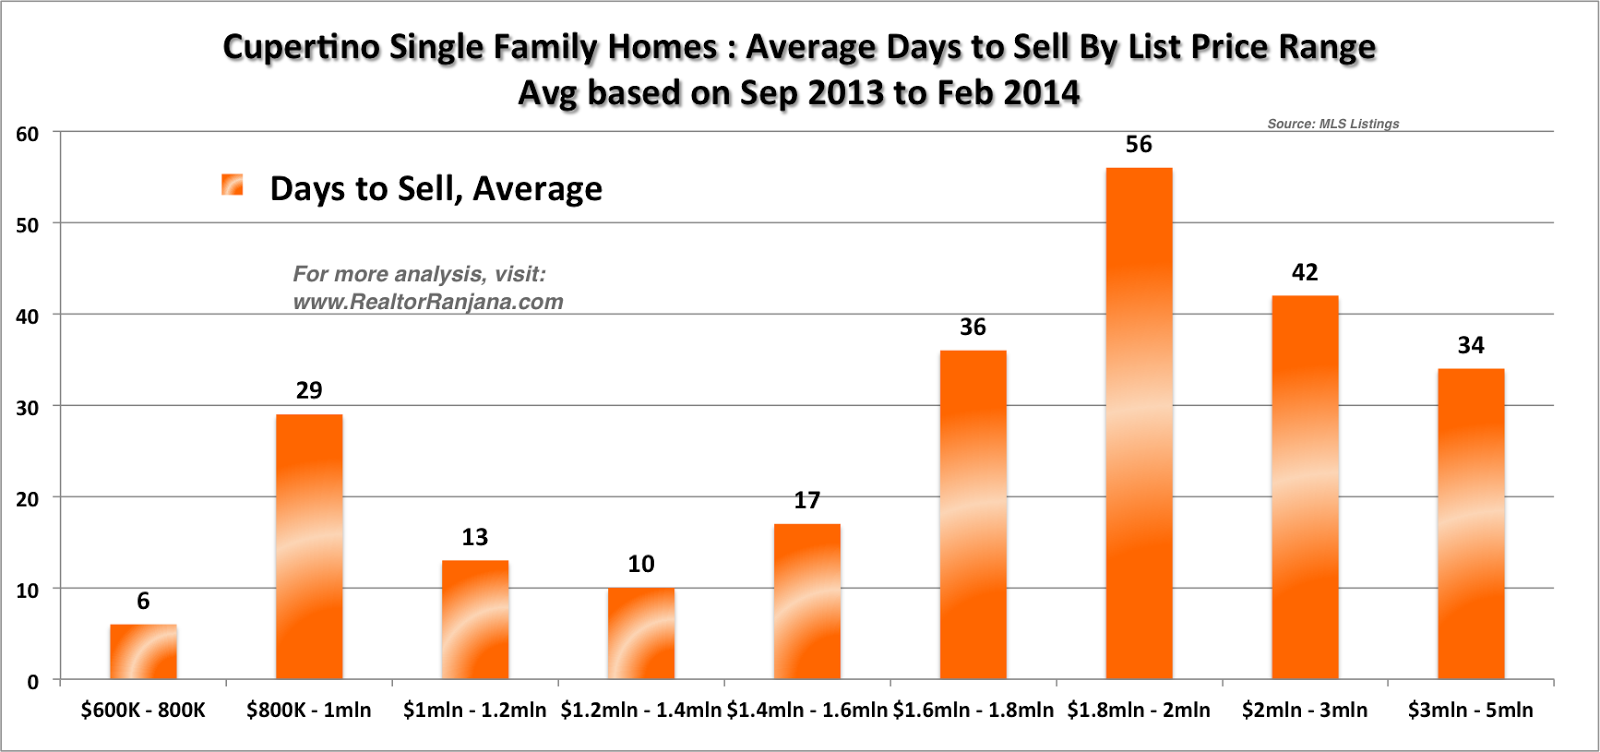 Cupertino Single Family Homes: Average Days to Sell by List Price Range